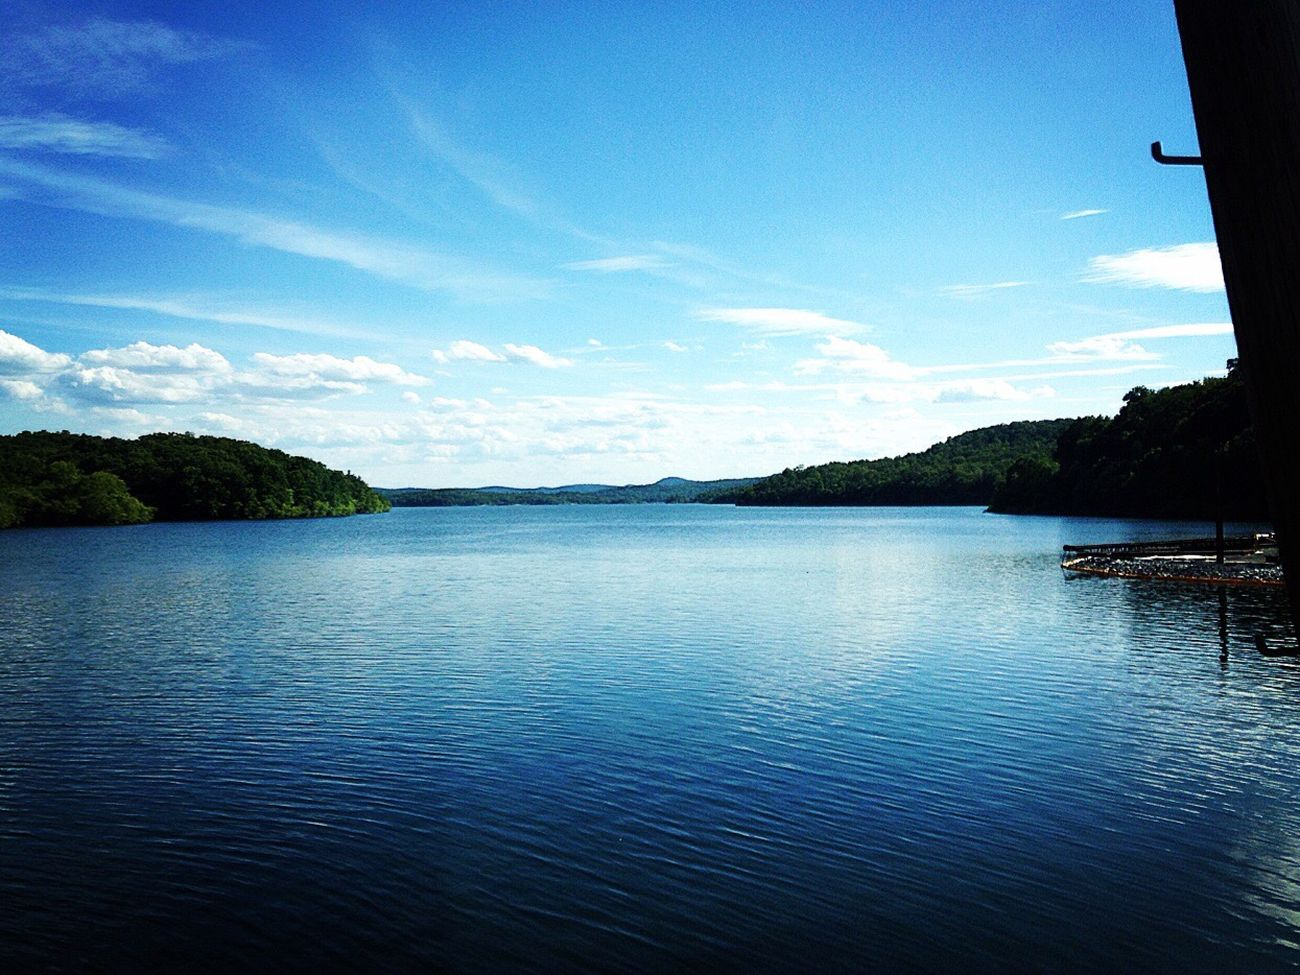 Wanaque Scenery Viewfrommyiphoneornikon Photography New Jersey Lake Lake Wanaque